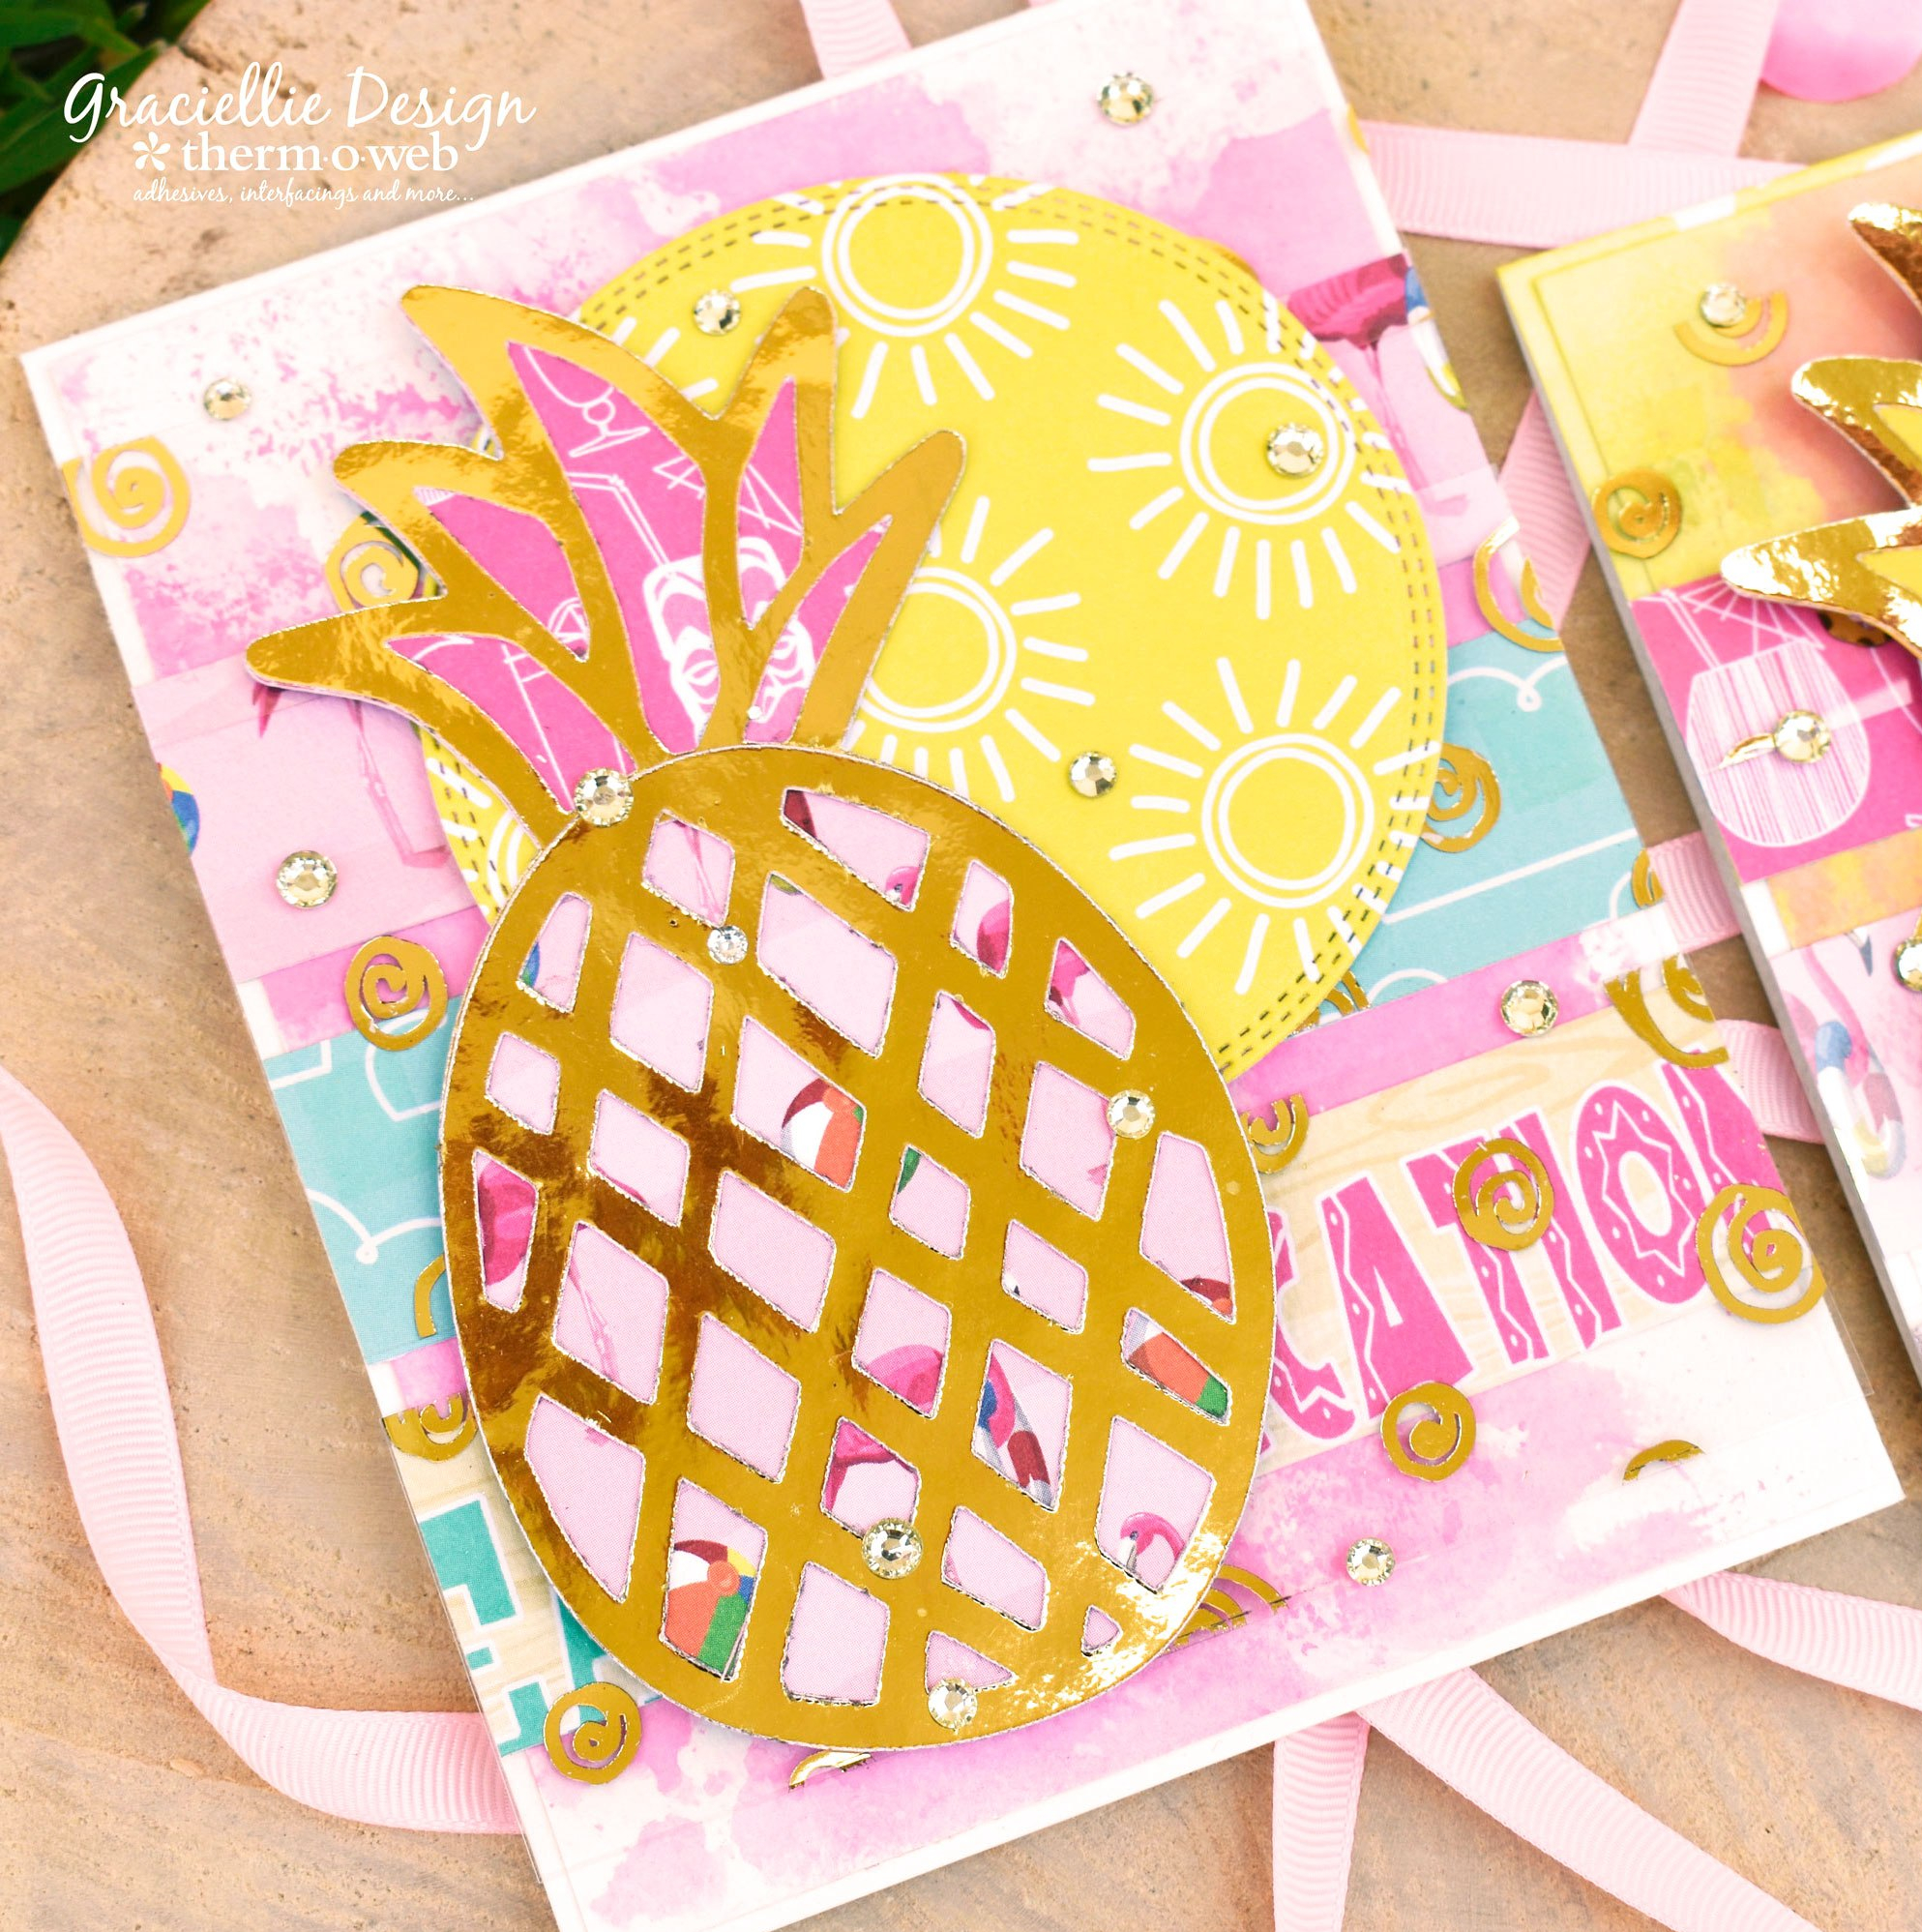 foiledpineapplecards_thermoweb_gracielliedesign_6b.jpg